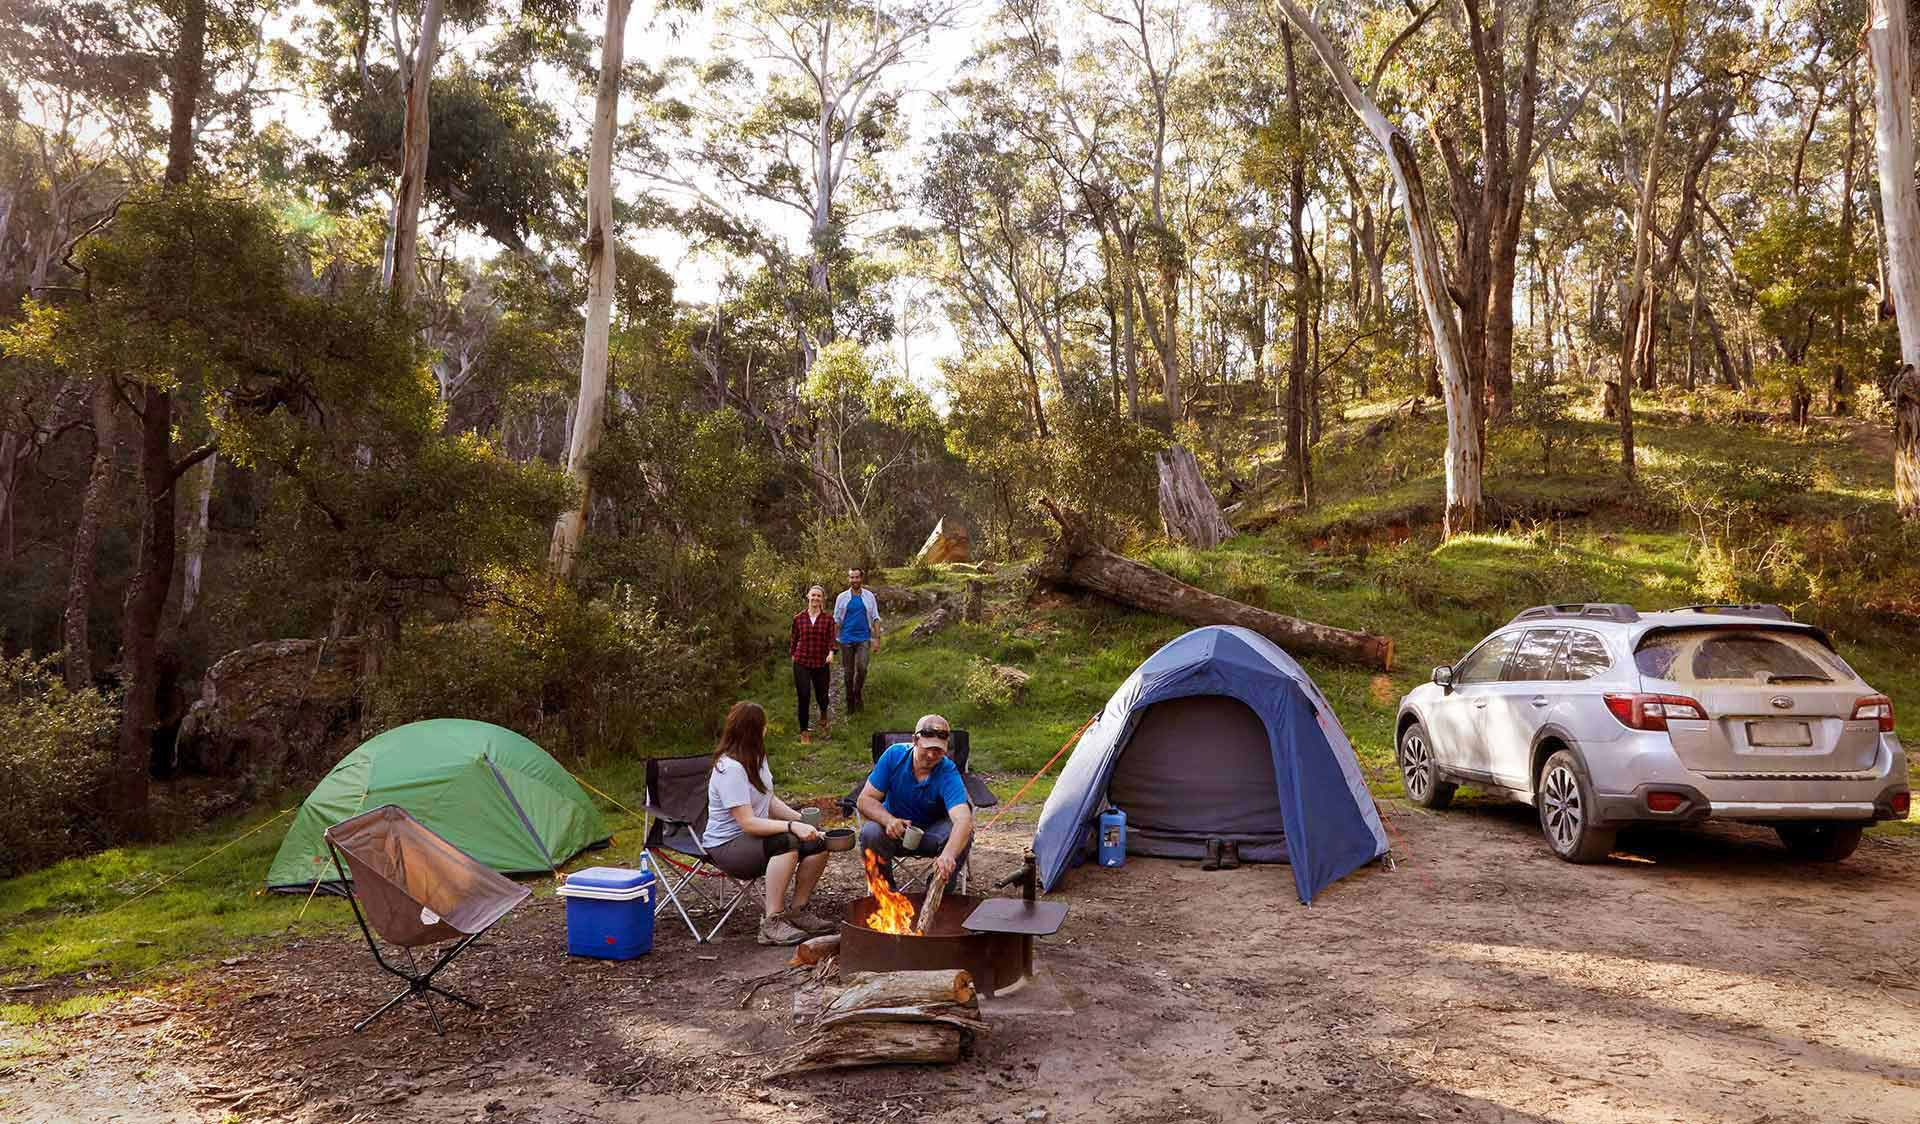 A couple sit around a campsite and welcome their friends to their campsite as they walk in.